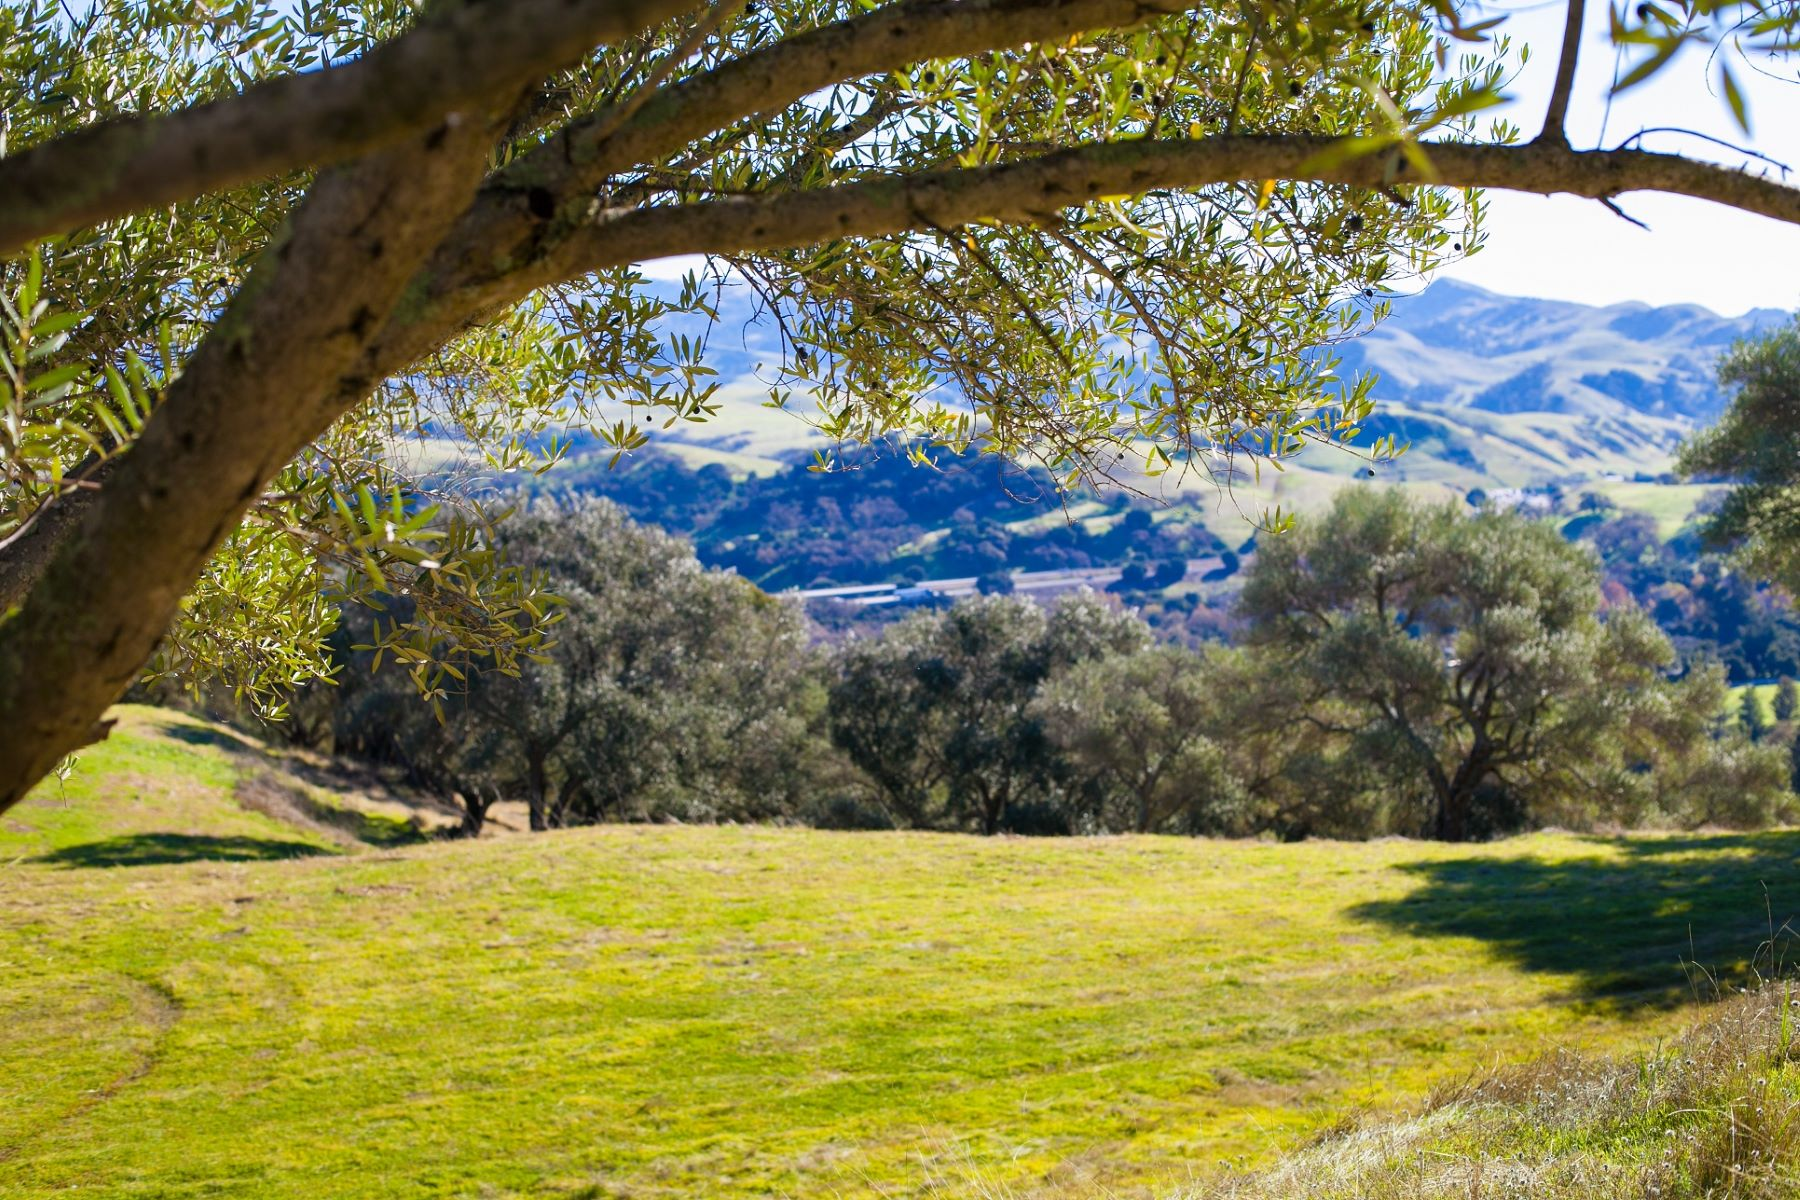 Land for Sale at 10.42 Acre Panoramic View Lot 9925 Foothill Road Sunol, California 94586 United States